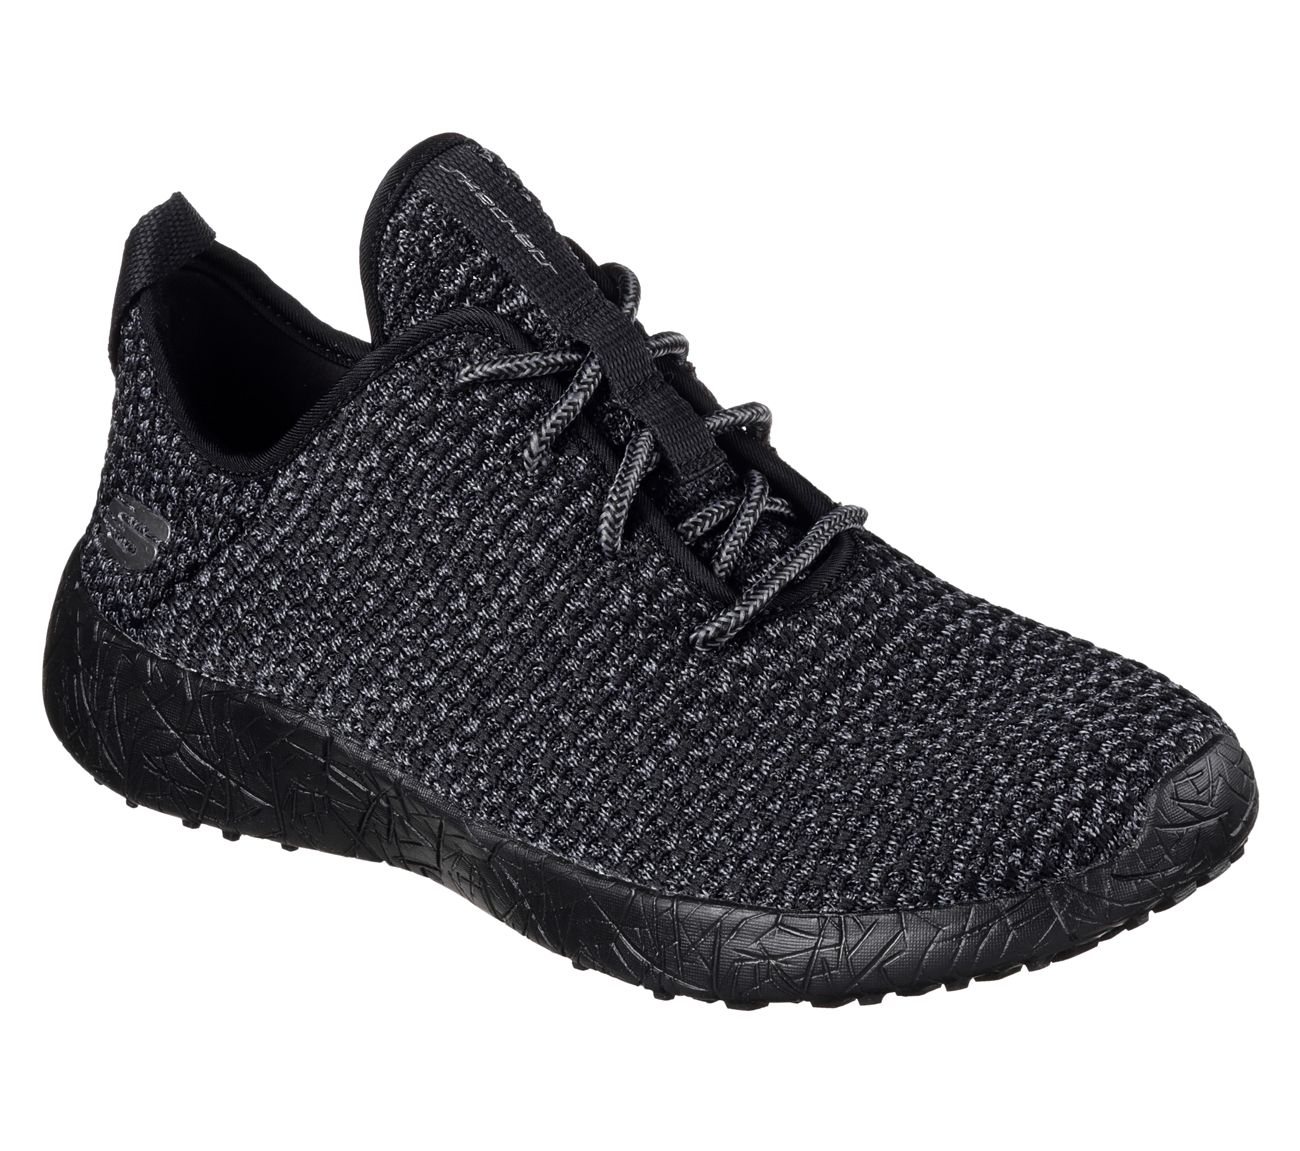 dda8ff59b3da The sweet spot where comfort and style combine in the SKECHERS Burst - City  Scene shoe. Soft woven sporty knit fabric upper in a lace up casual sneaker  with ...